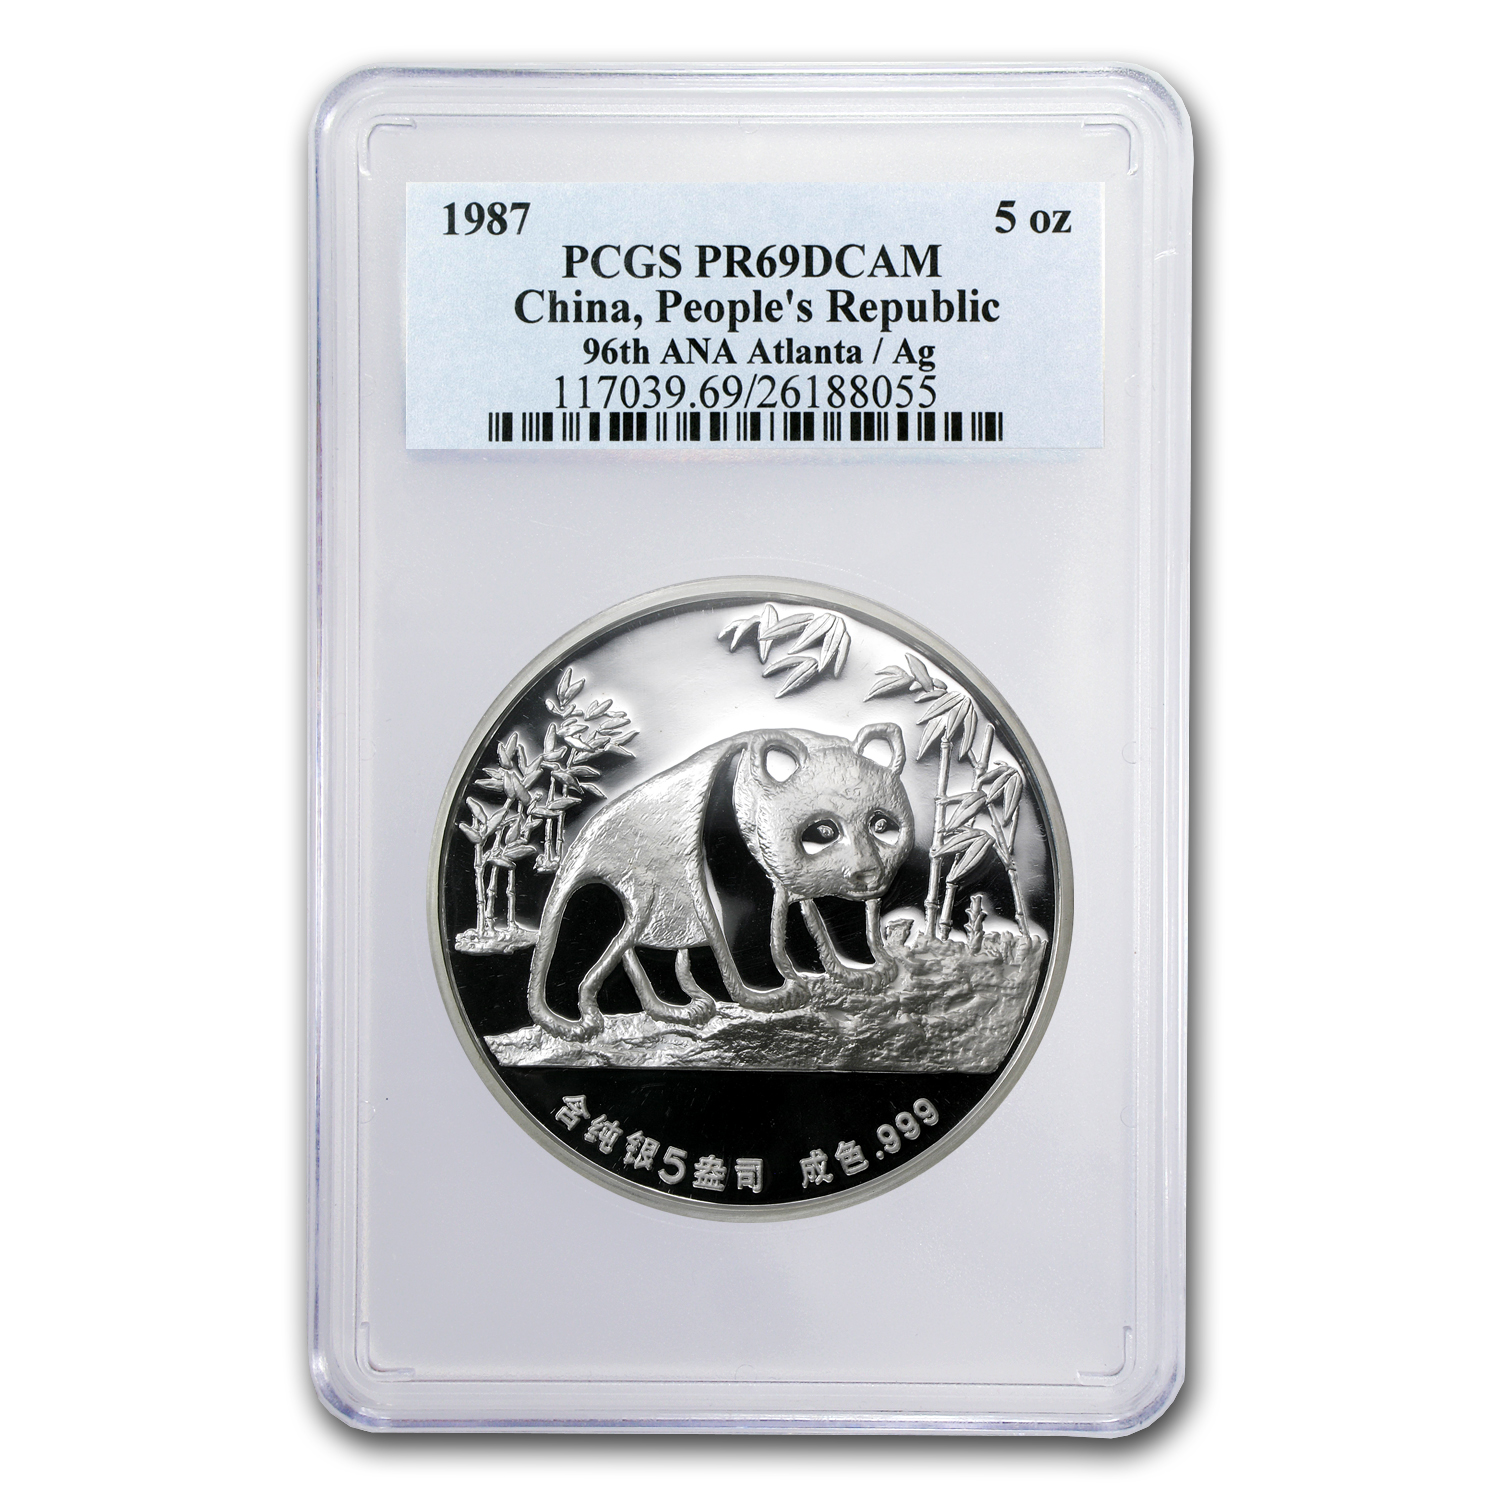 1987 5 oz Silver Chinese Panda 96th ANA Atlanta PR-69 PCGS